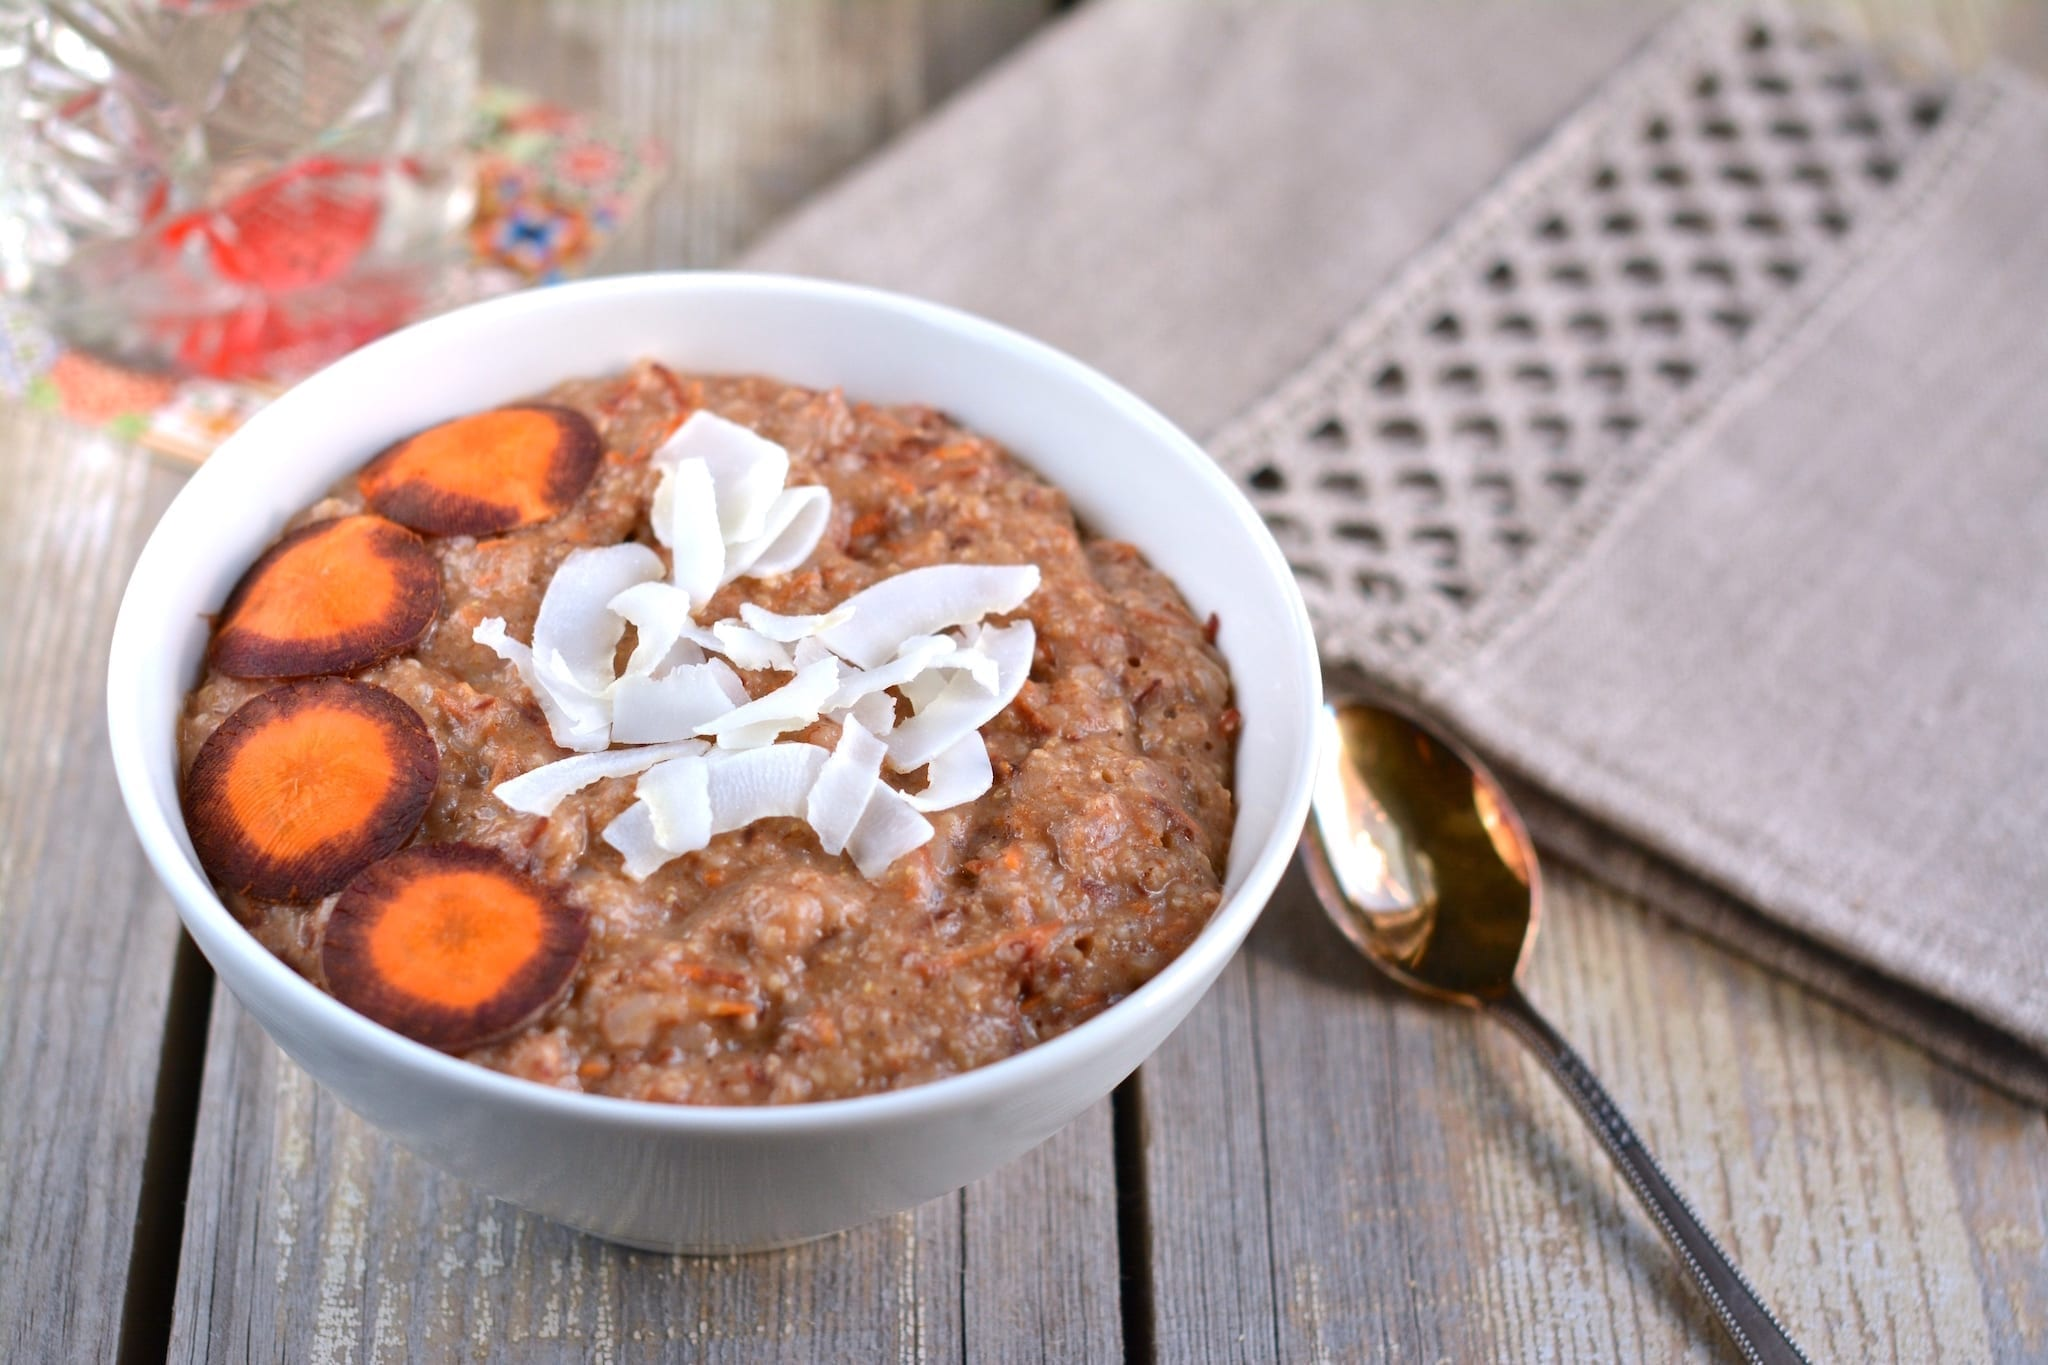 Porridge, Oat Bran-Buckwheat-Carrot